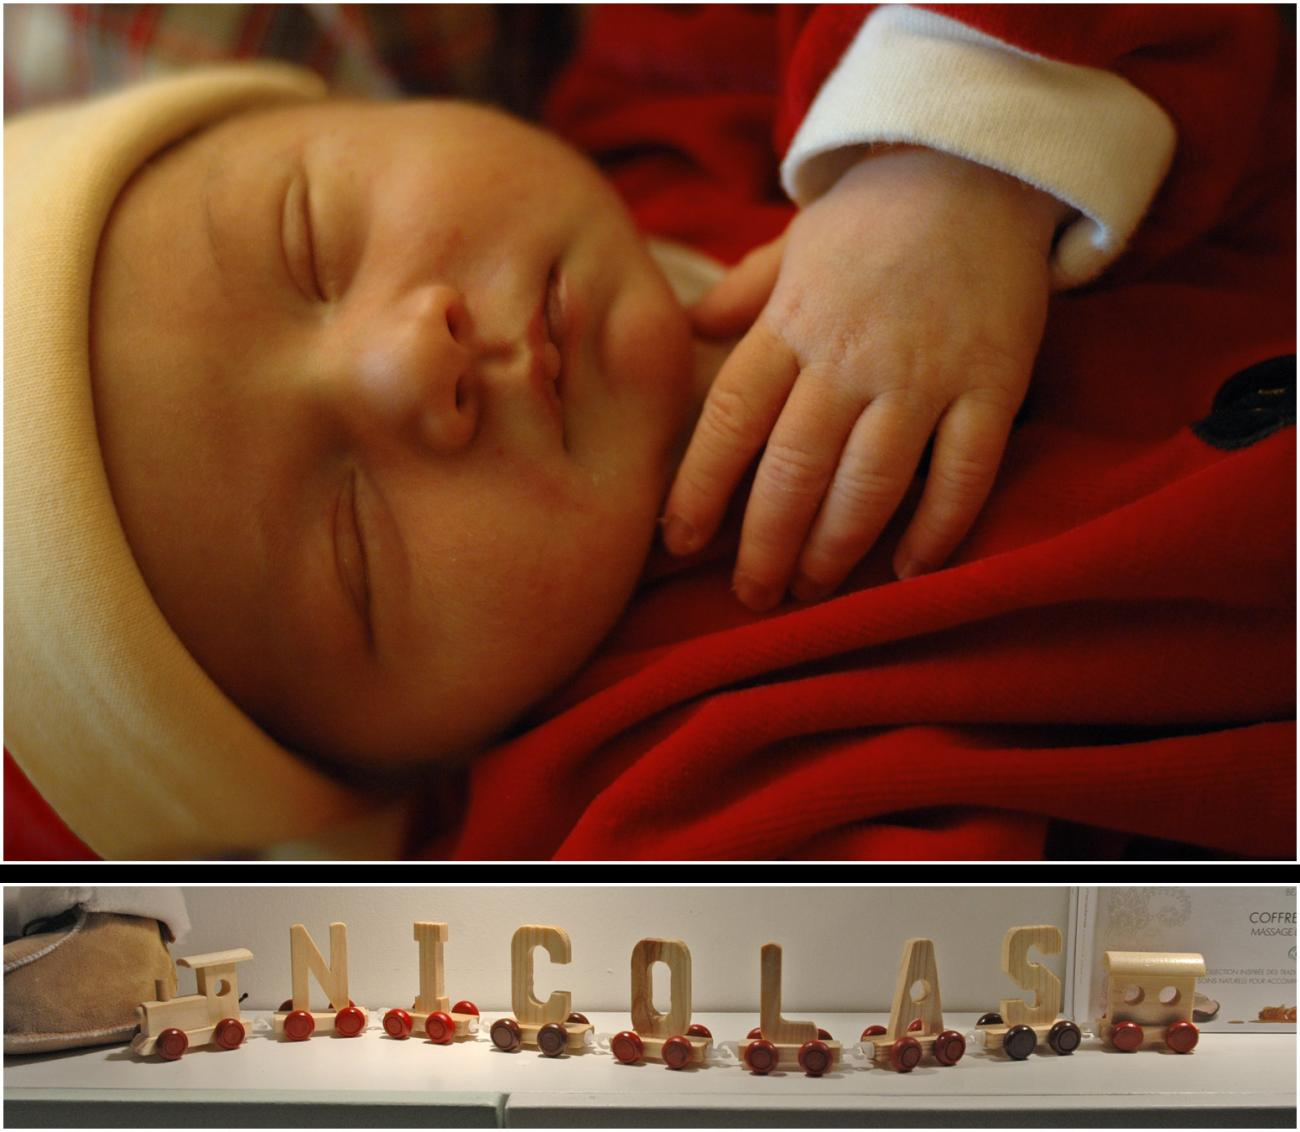 The smallest Santa Claus in the world?